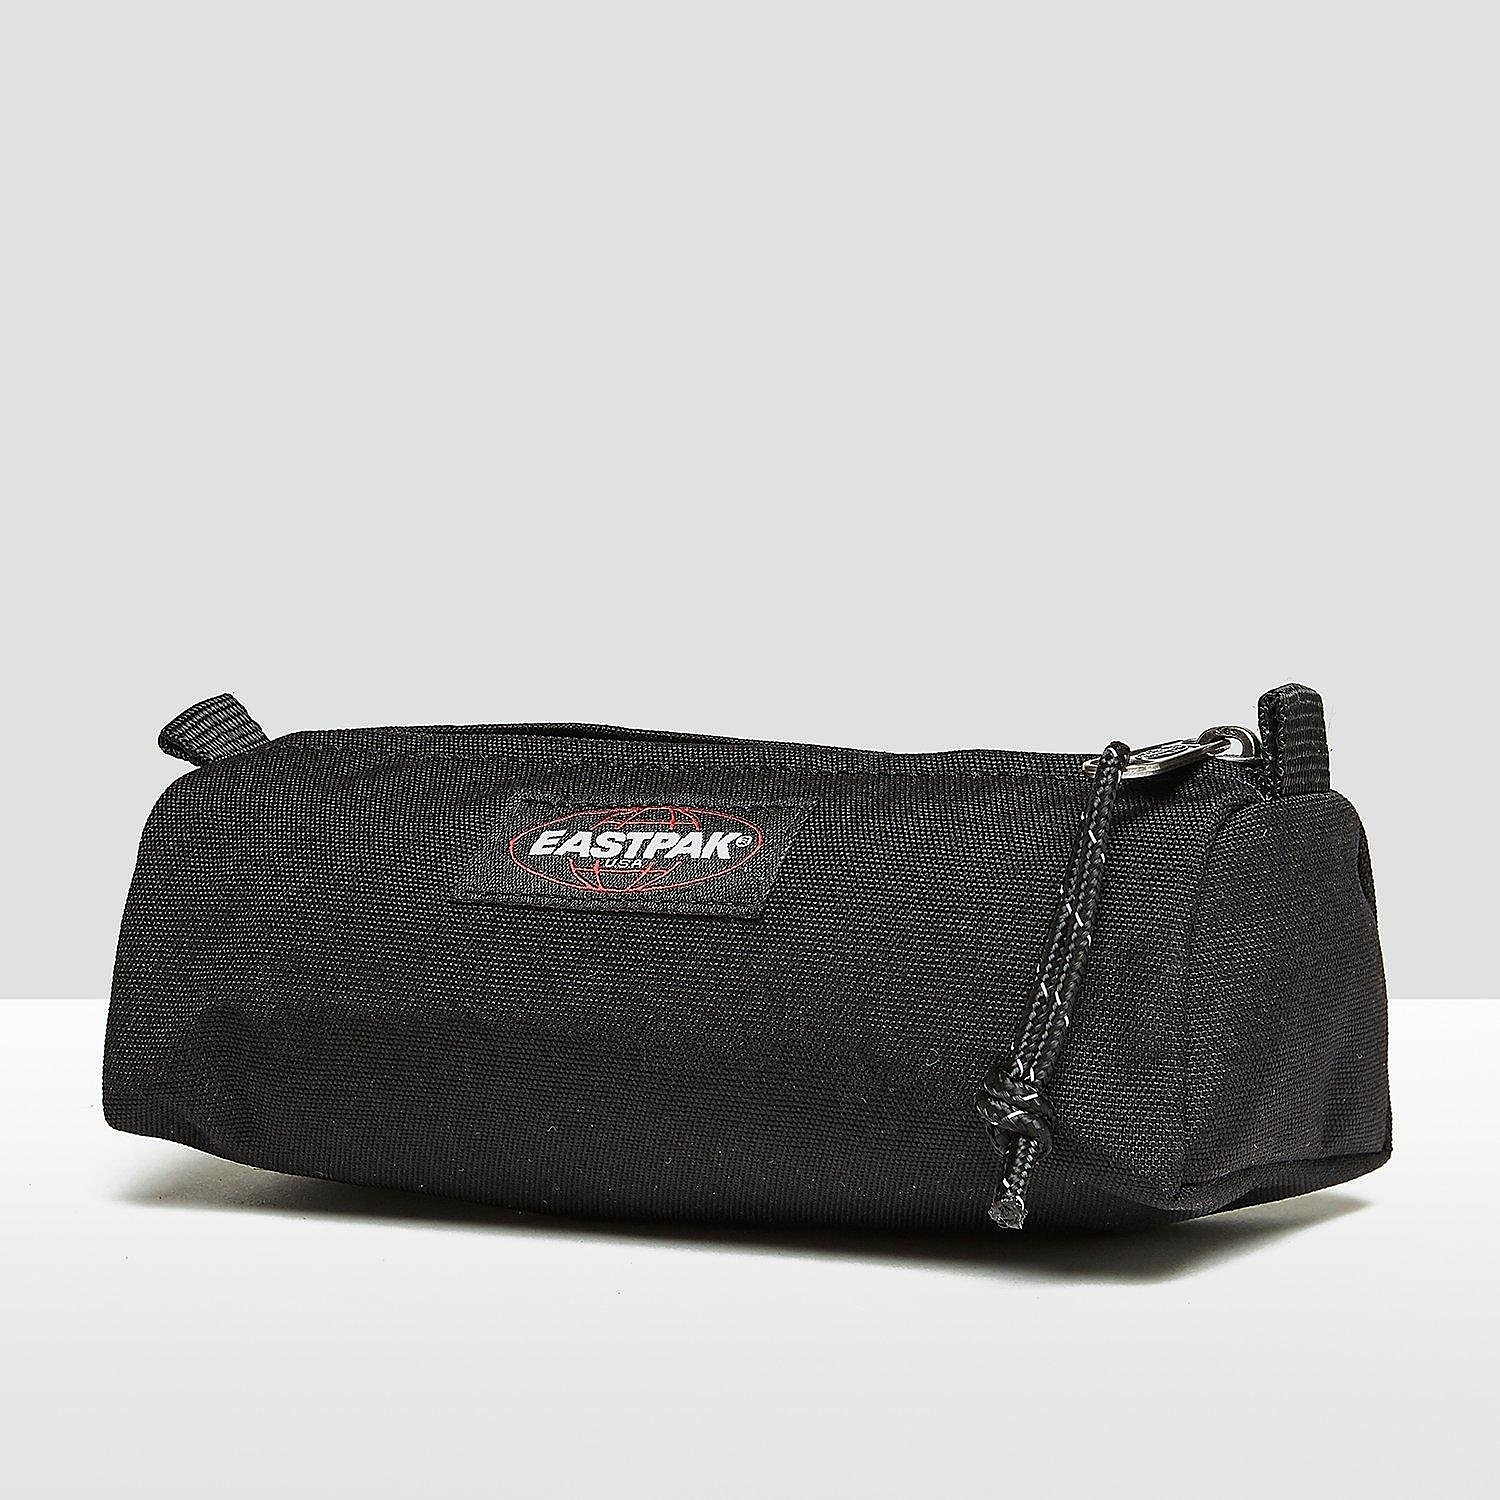 EASTPAK BENCHMARK SINGLE ETUI ZWART